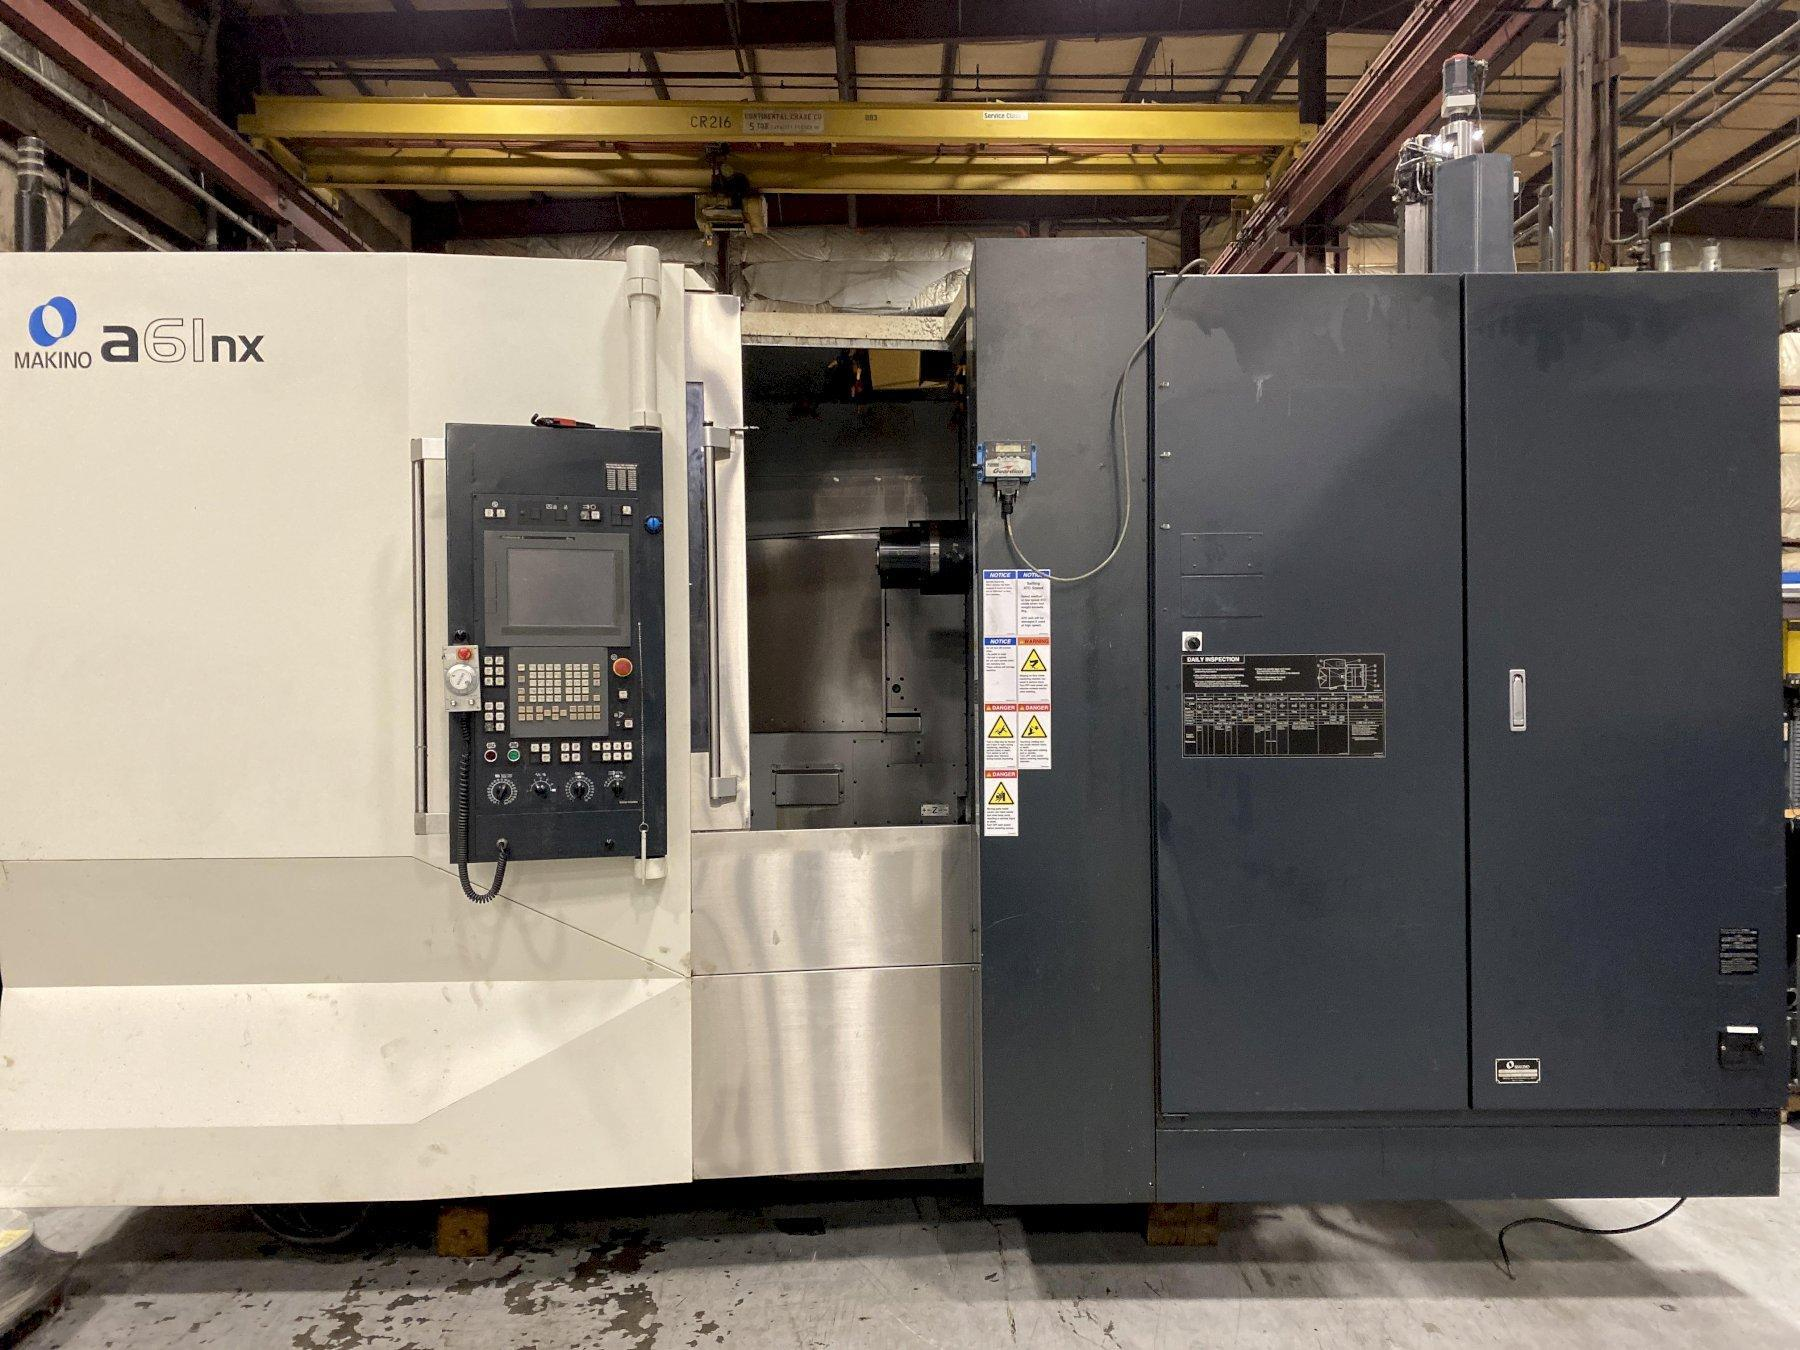 2011 Makino A61NX - CNC Horizontal Machining Center